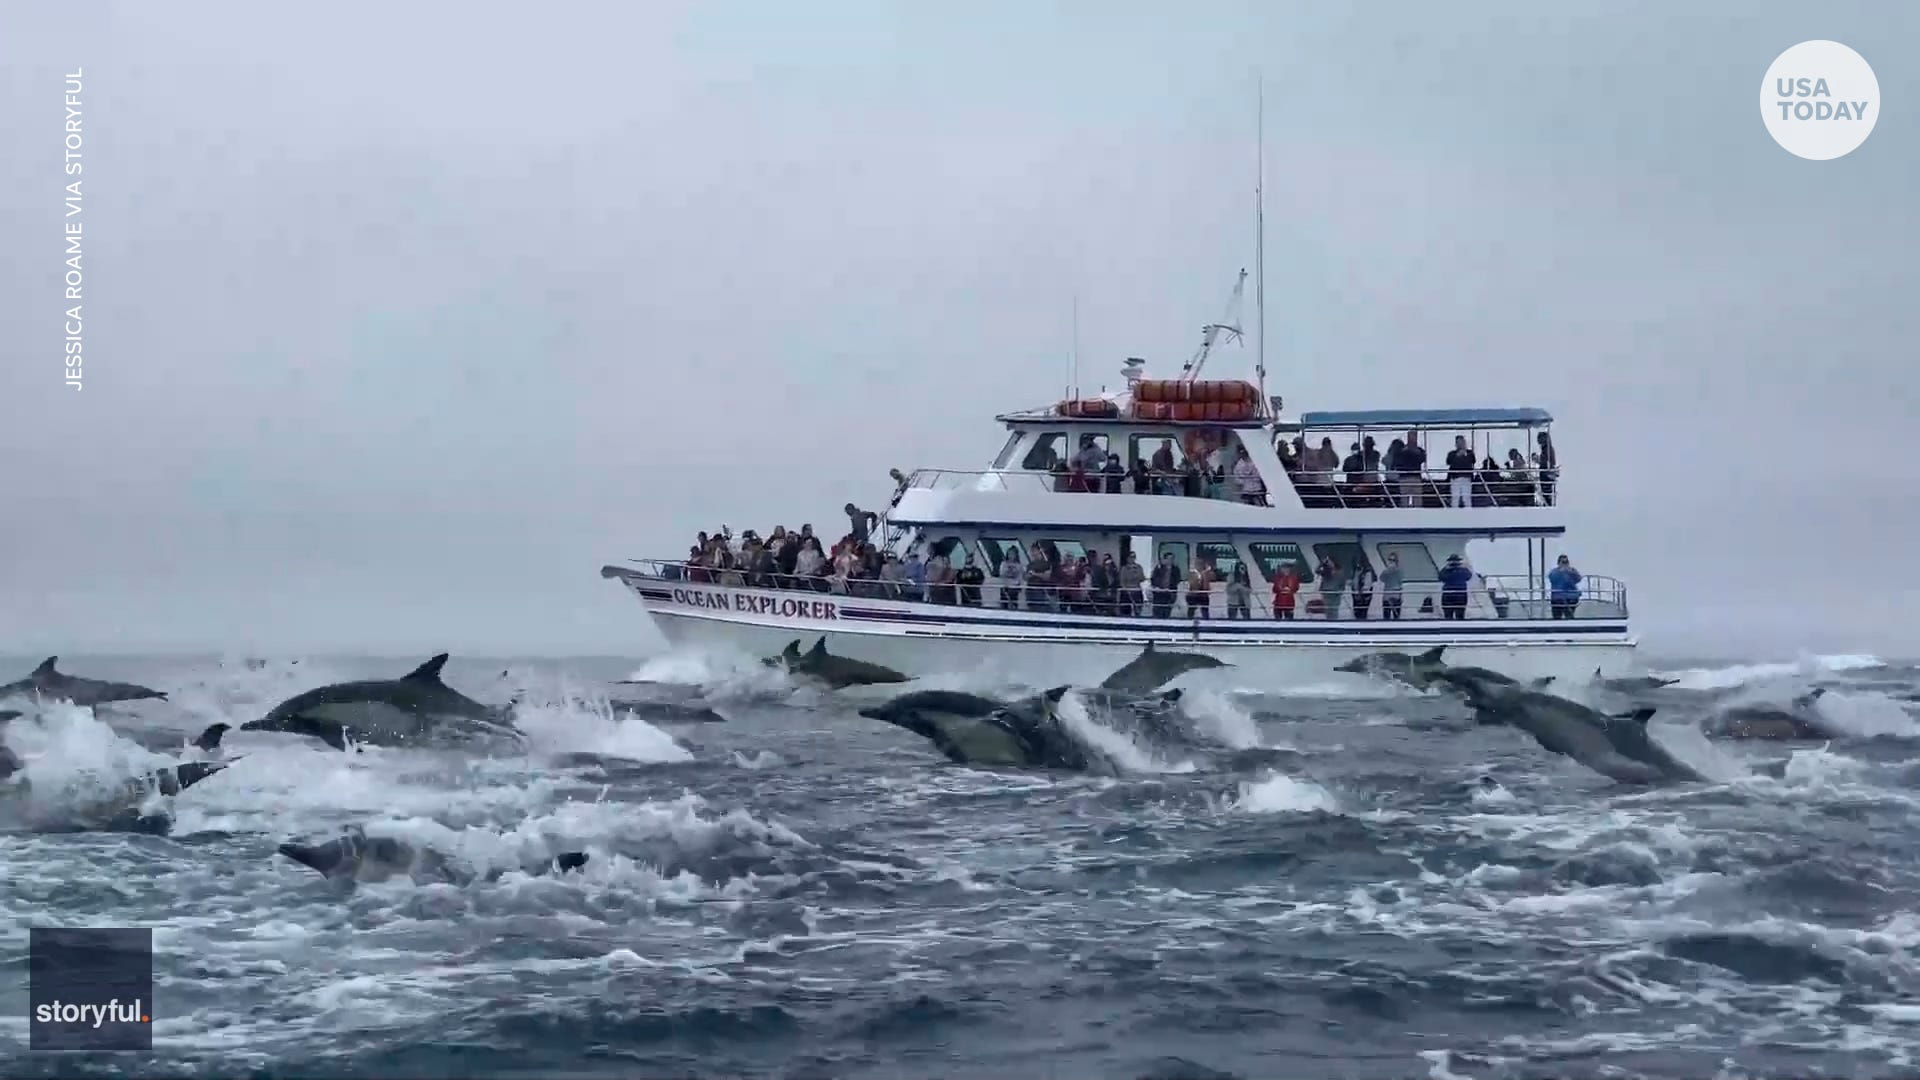 Hundreds of dolphins surround whale-watching boat in California